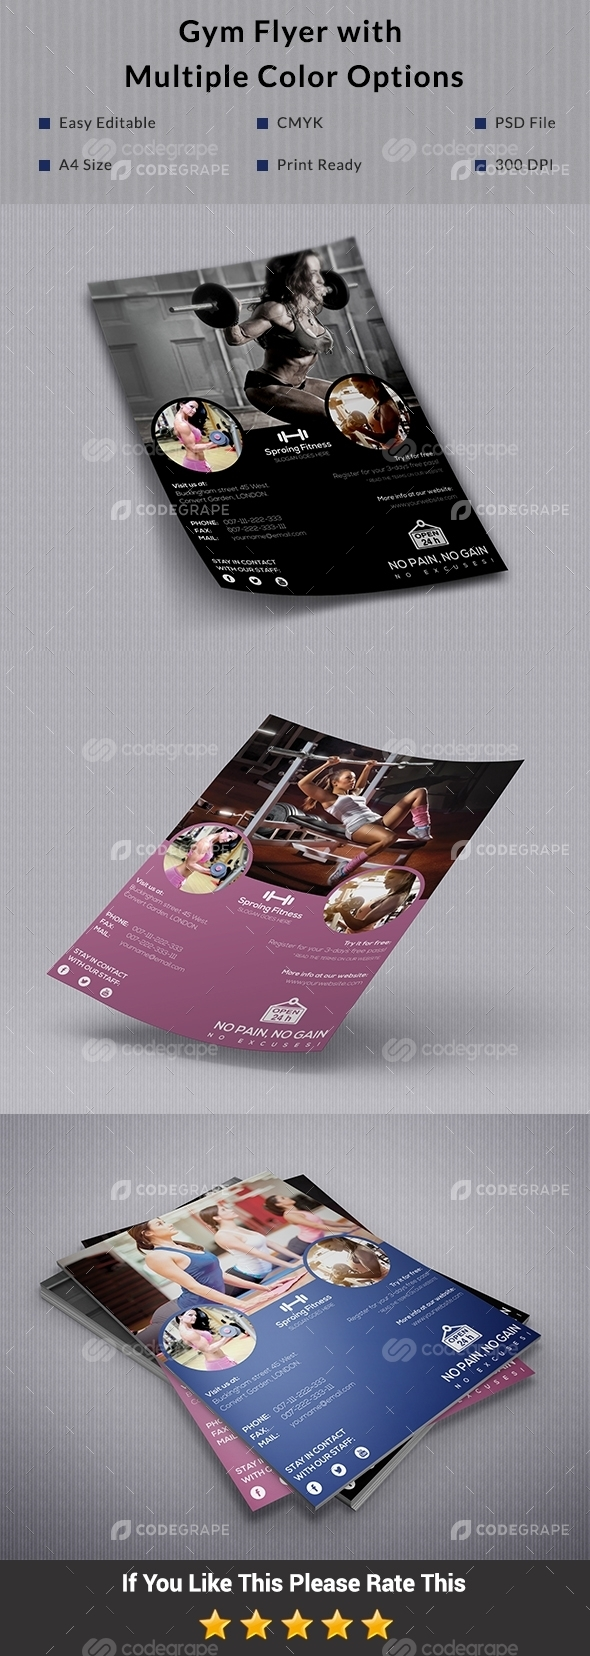 Gym Flyer with Multiple Color Options